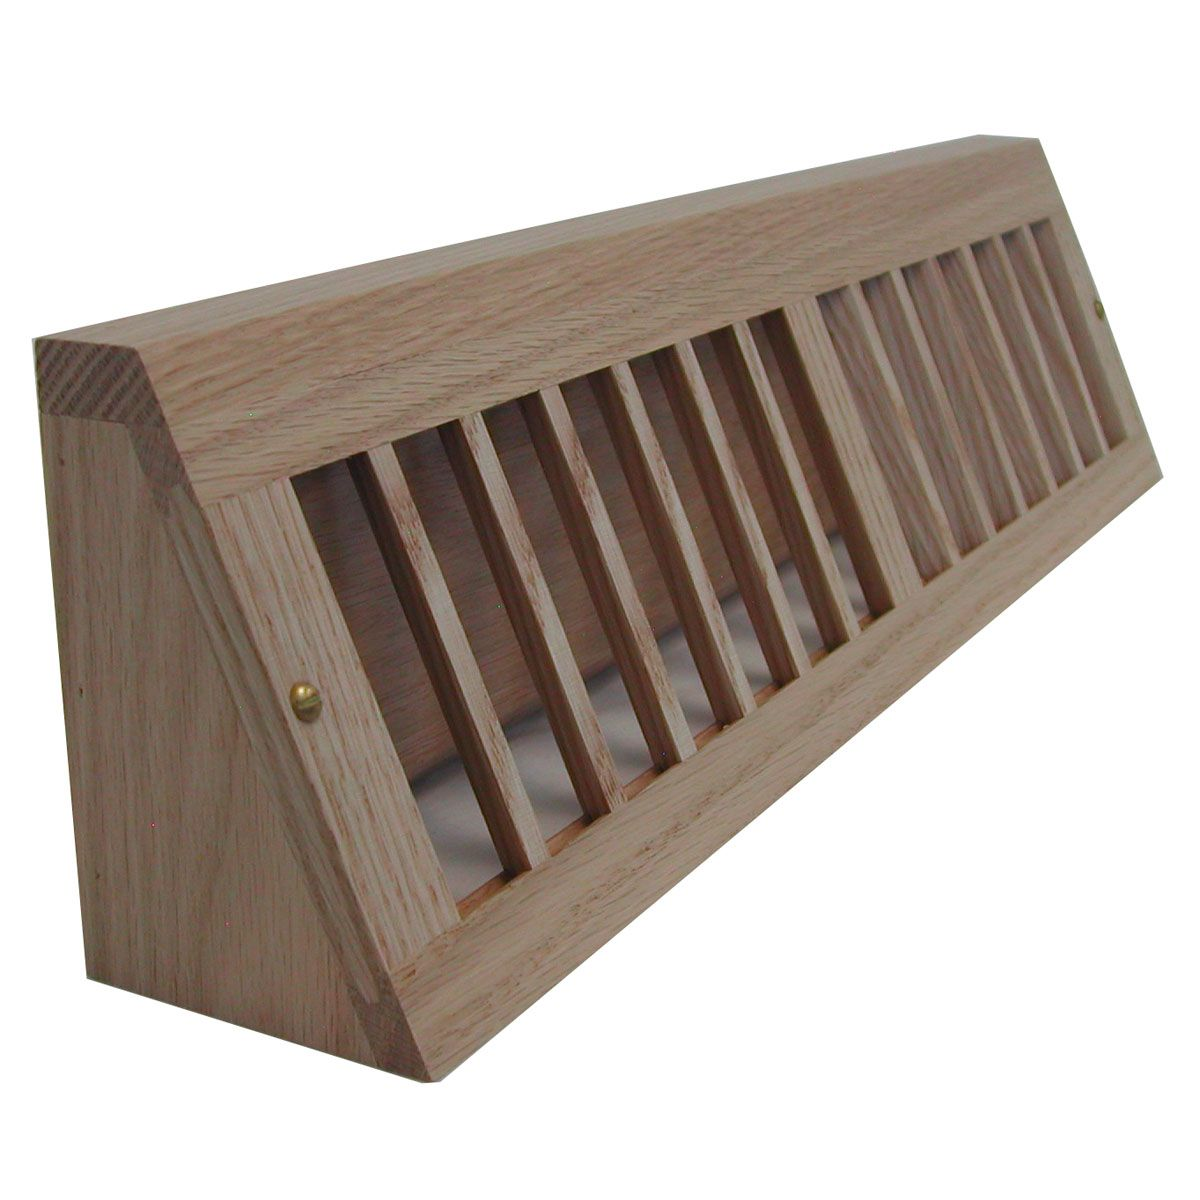 Wood Floor Vent Covers